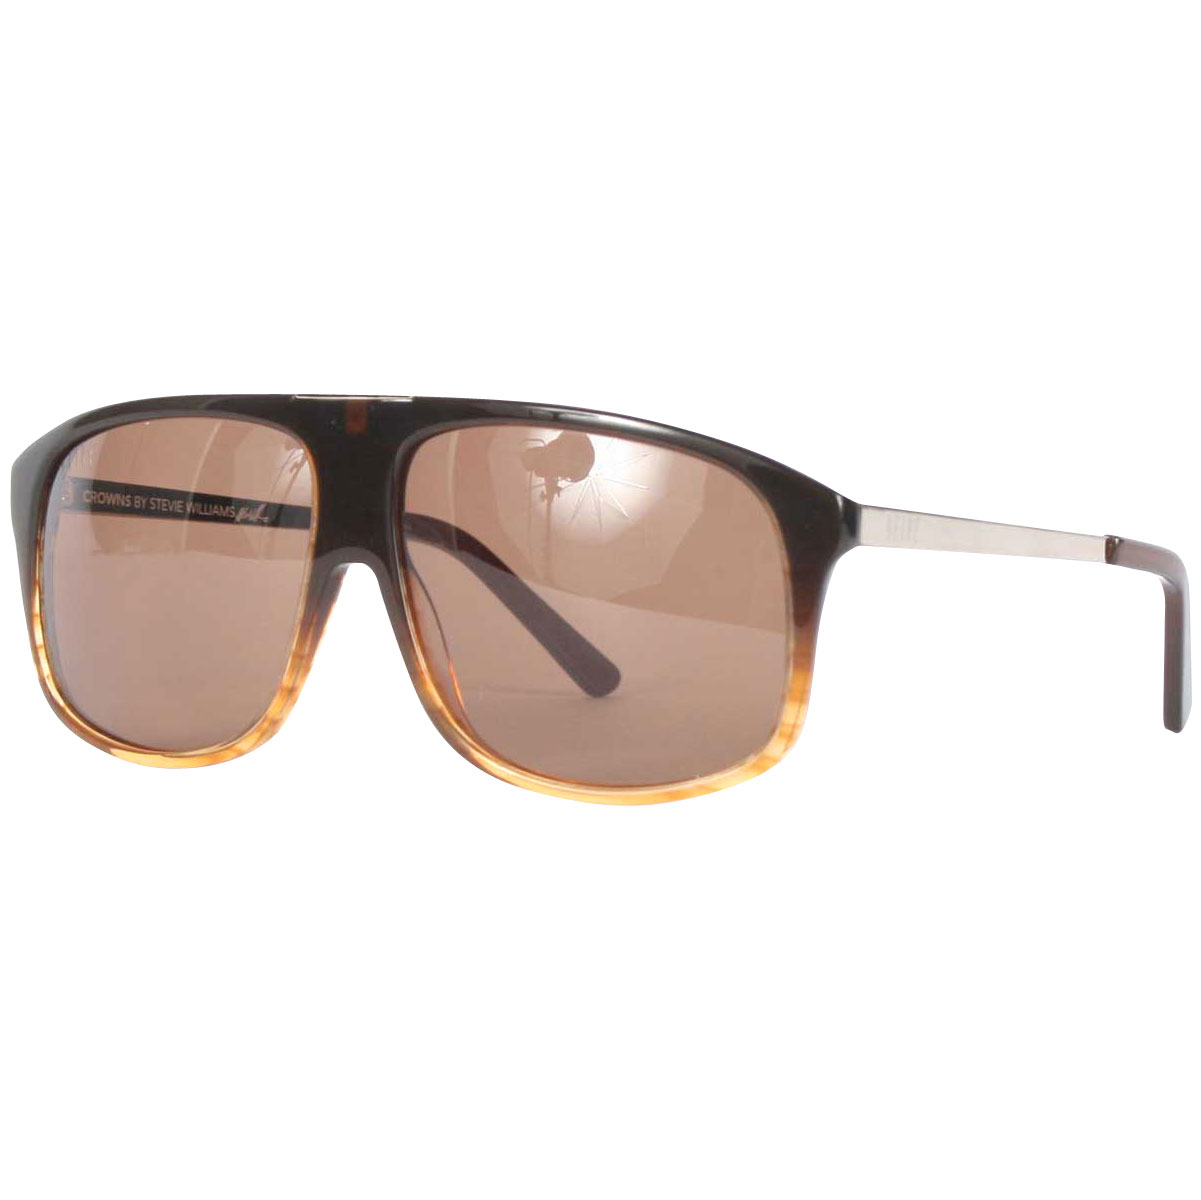 Image of 9Five - Crowns Sunglasses in Tortoise